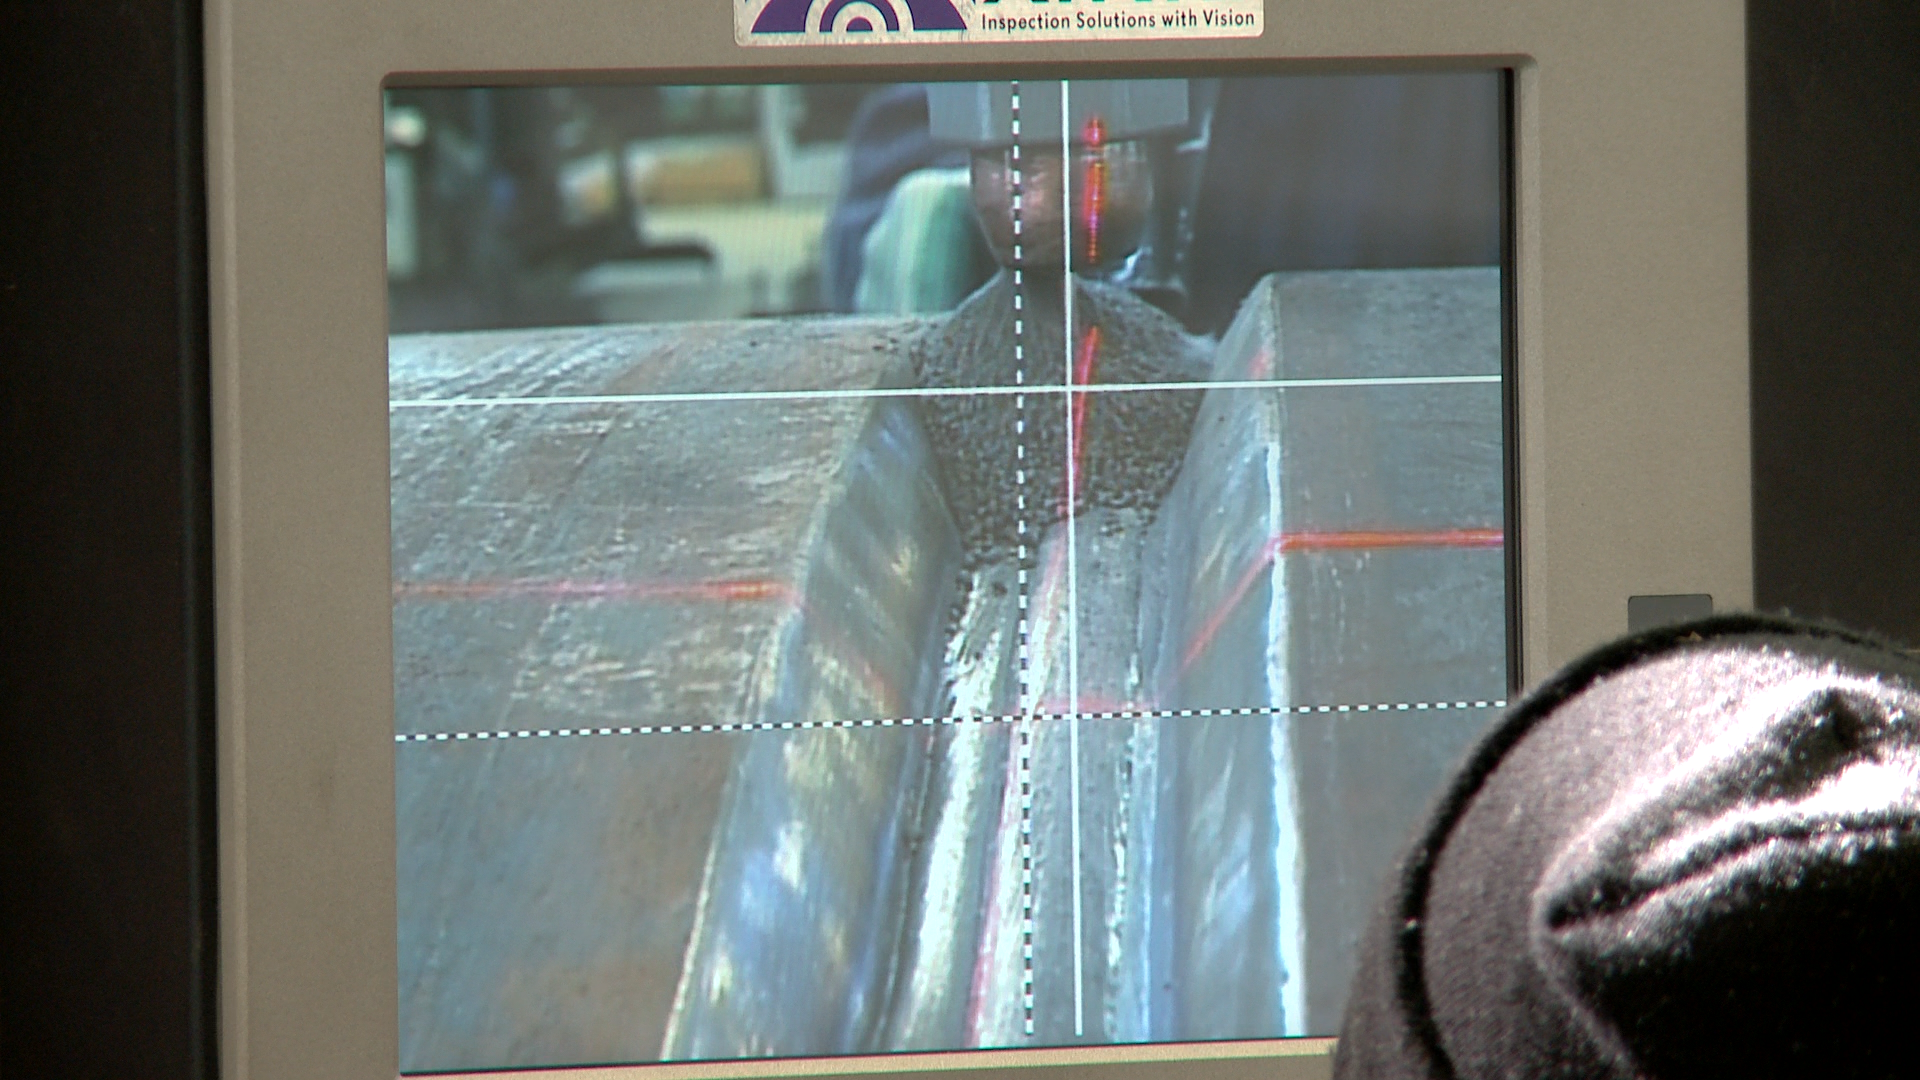 laser vision seam tracking for a column and boom manipulator.